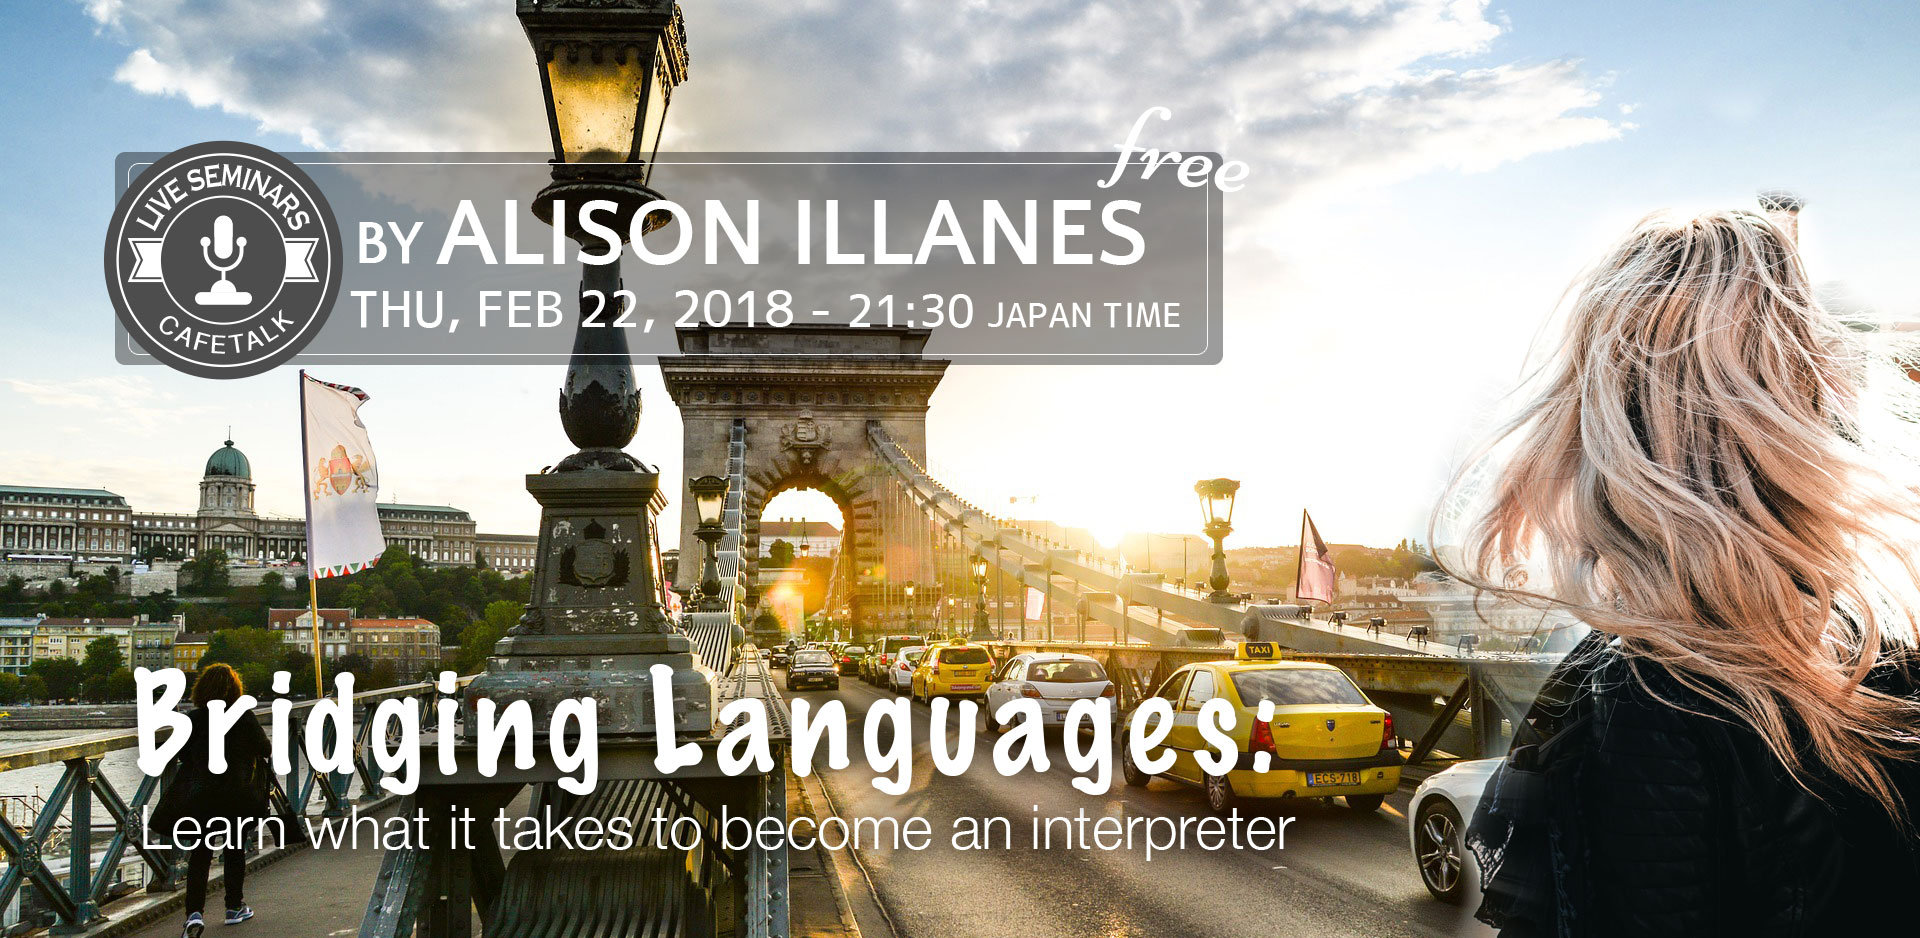 Learn what it takes to become an interpreter